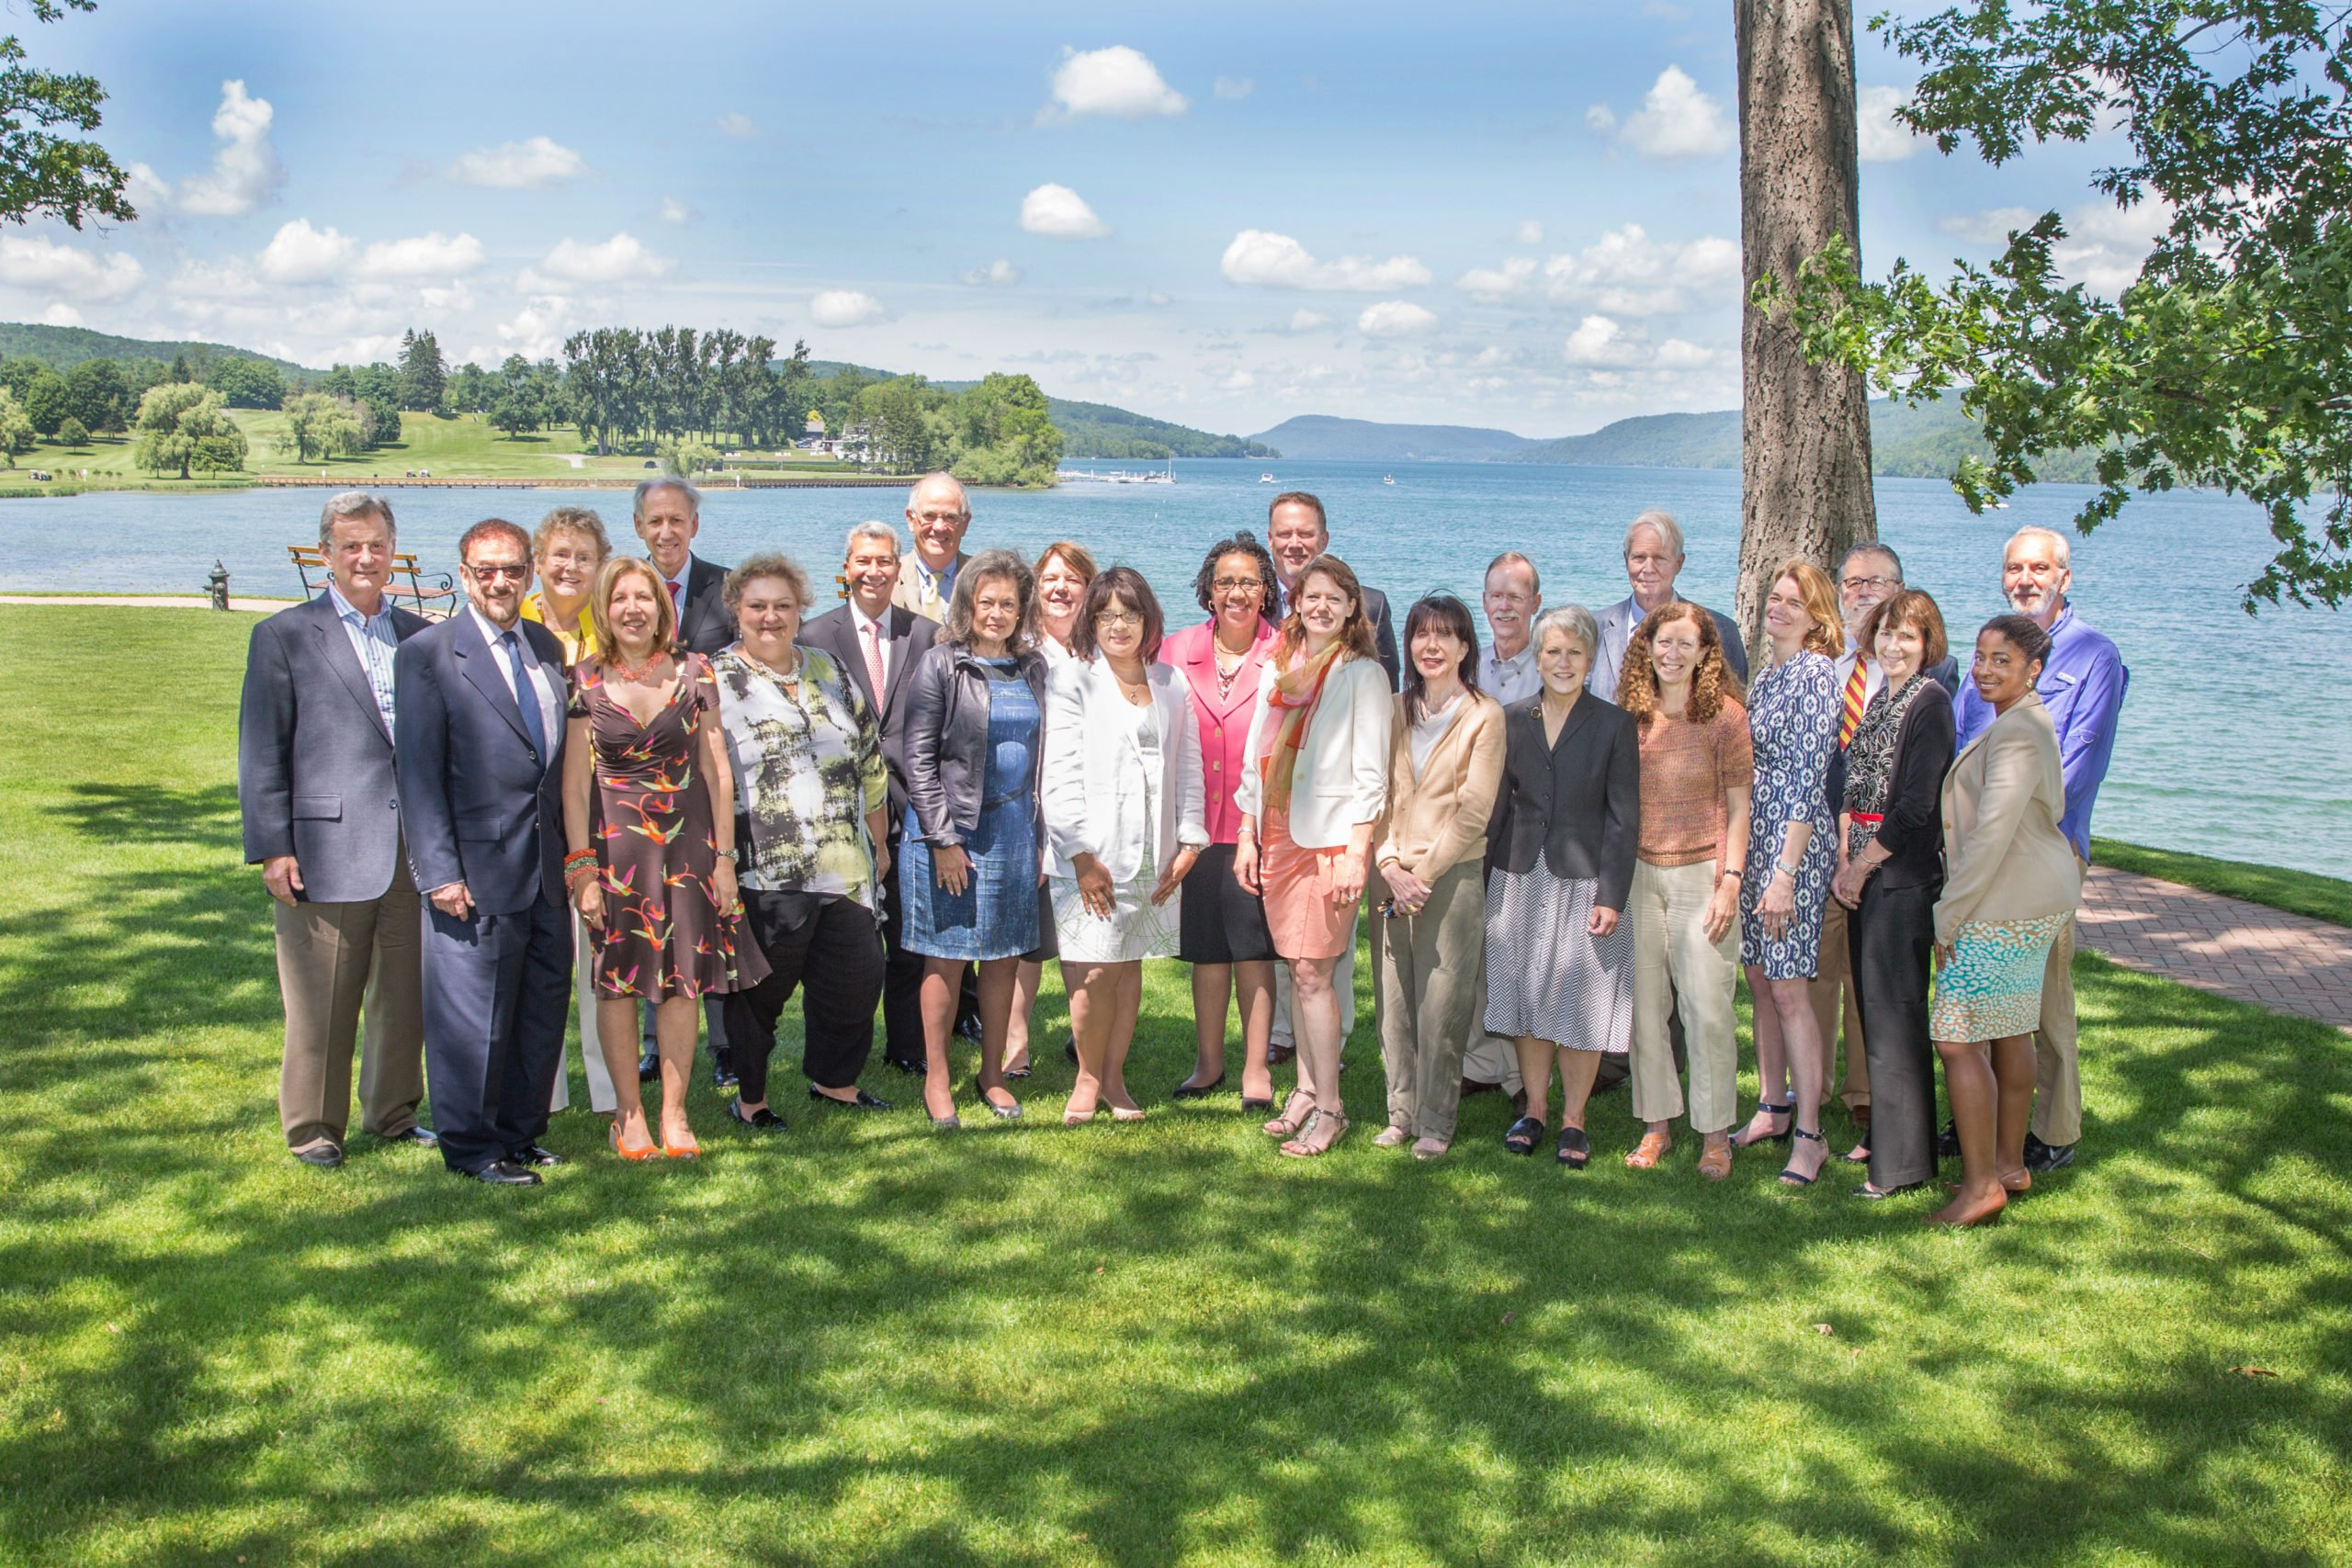 Group photo of Fellows standing in front of Otsego Lake, Cooperstown, New York